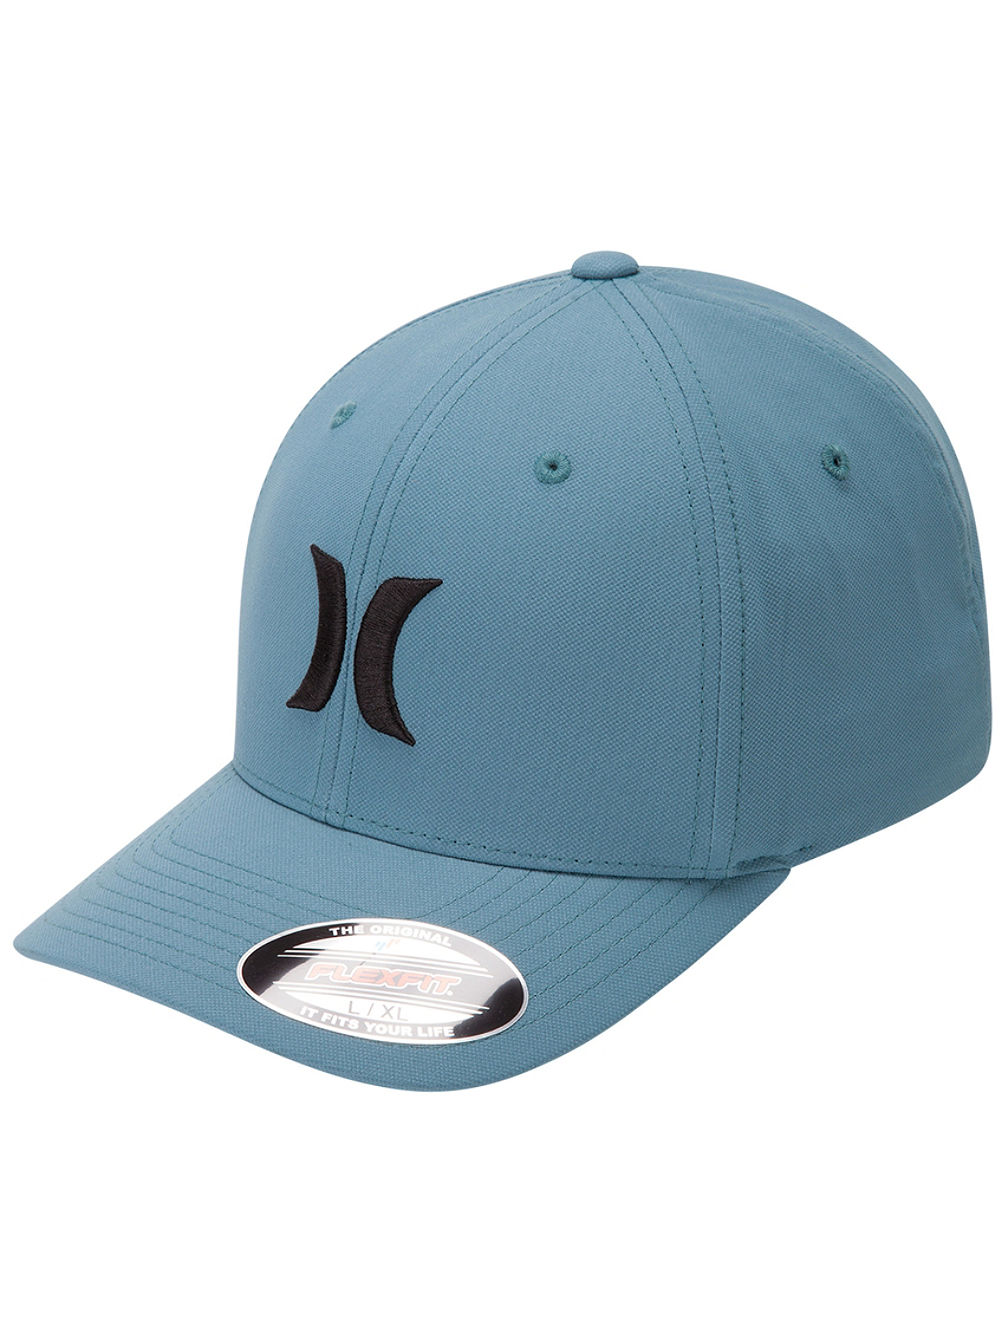 795e7bf71f2 Buy Hurley Dri-Fit One   Only Cap online at blue-tomato.com